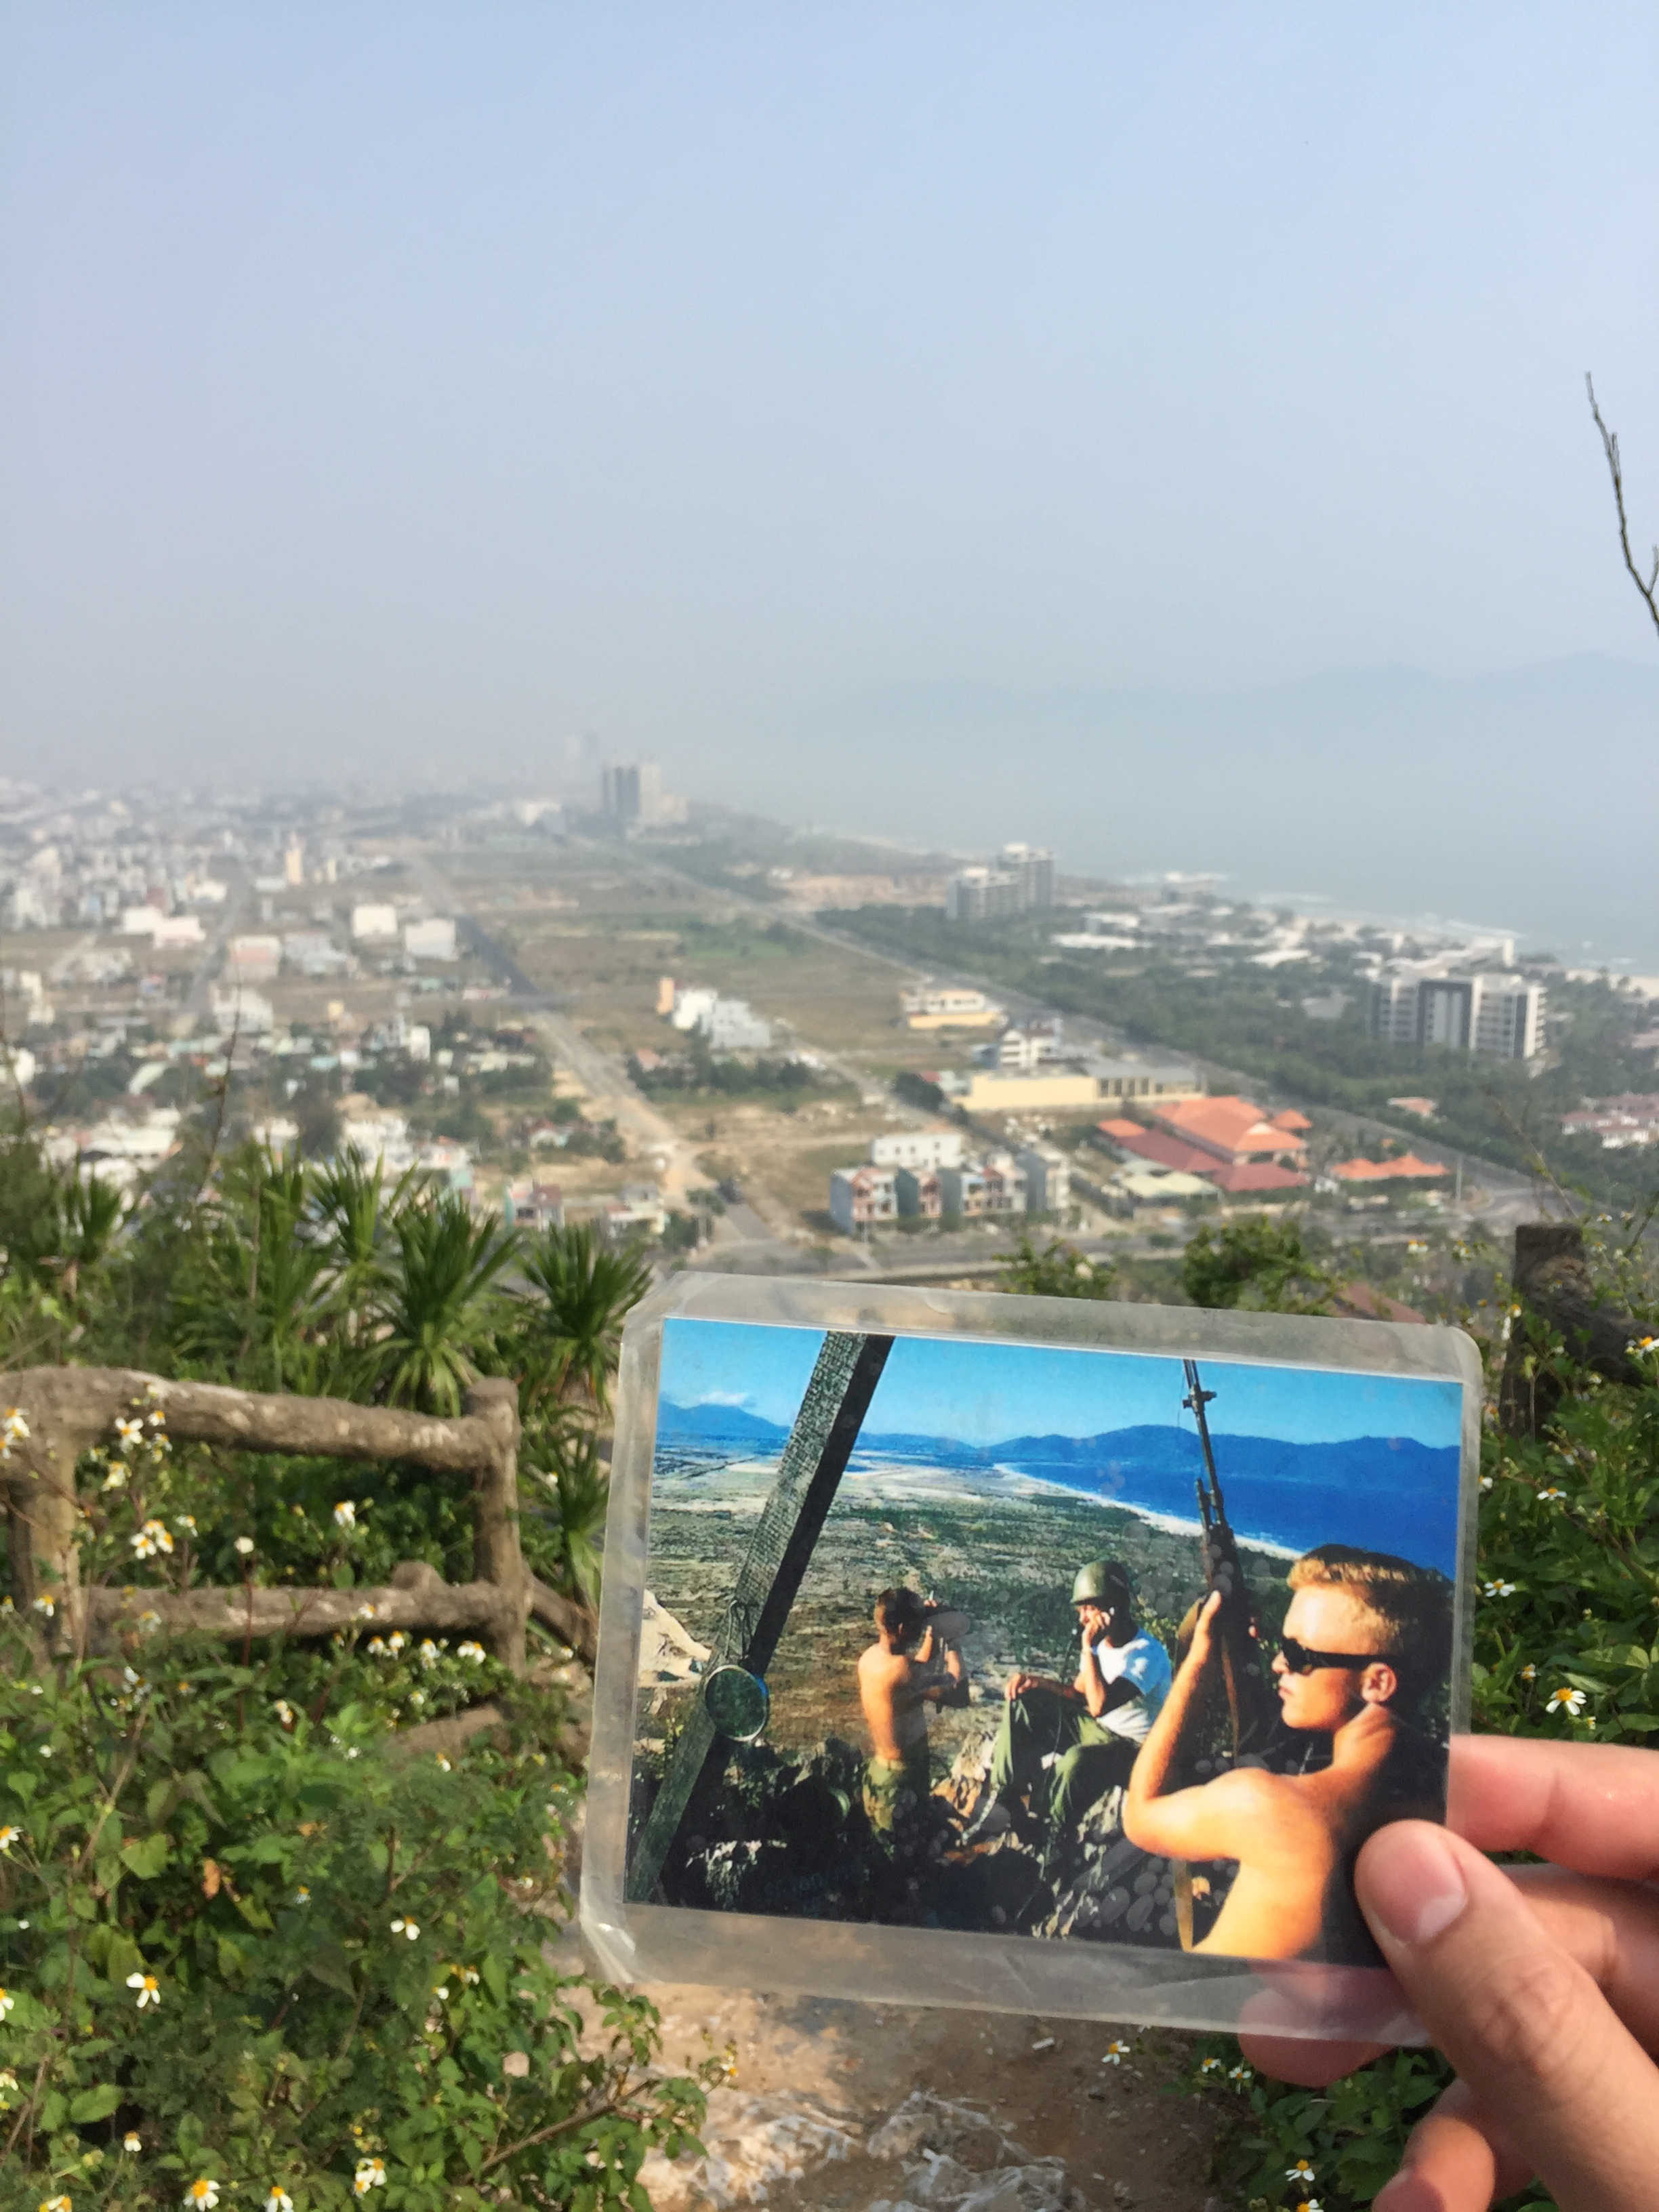 Video: Jeep Tour of Hoi An, Da Nang, and everything in-between